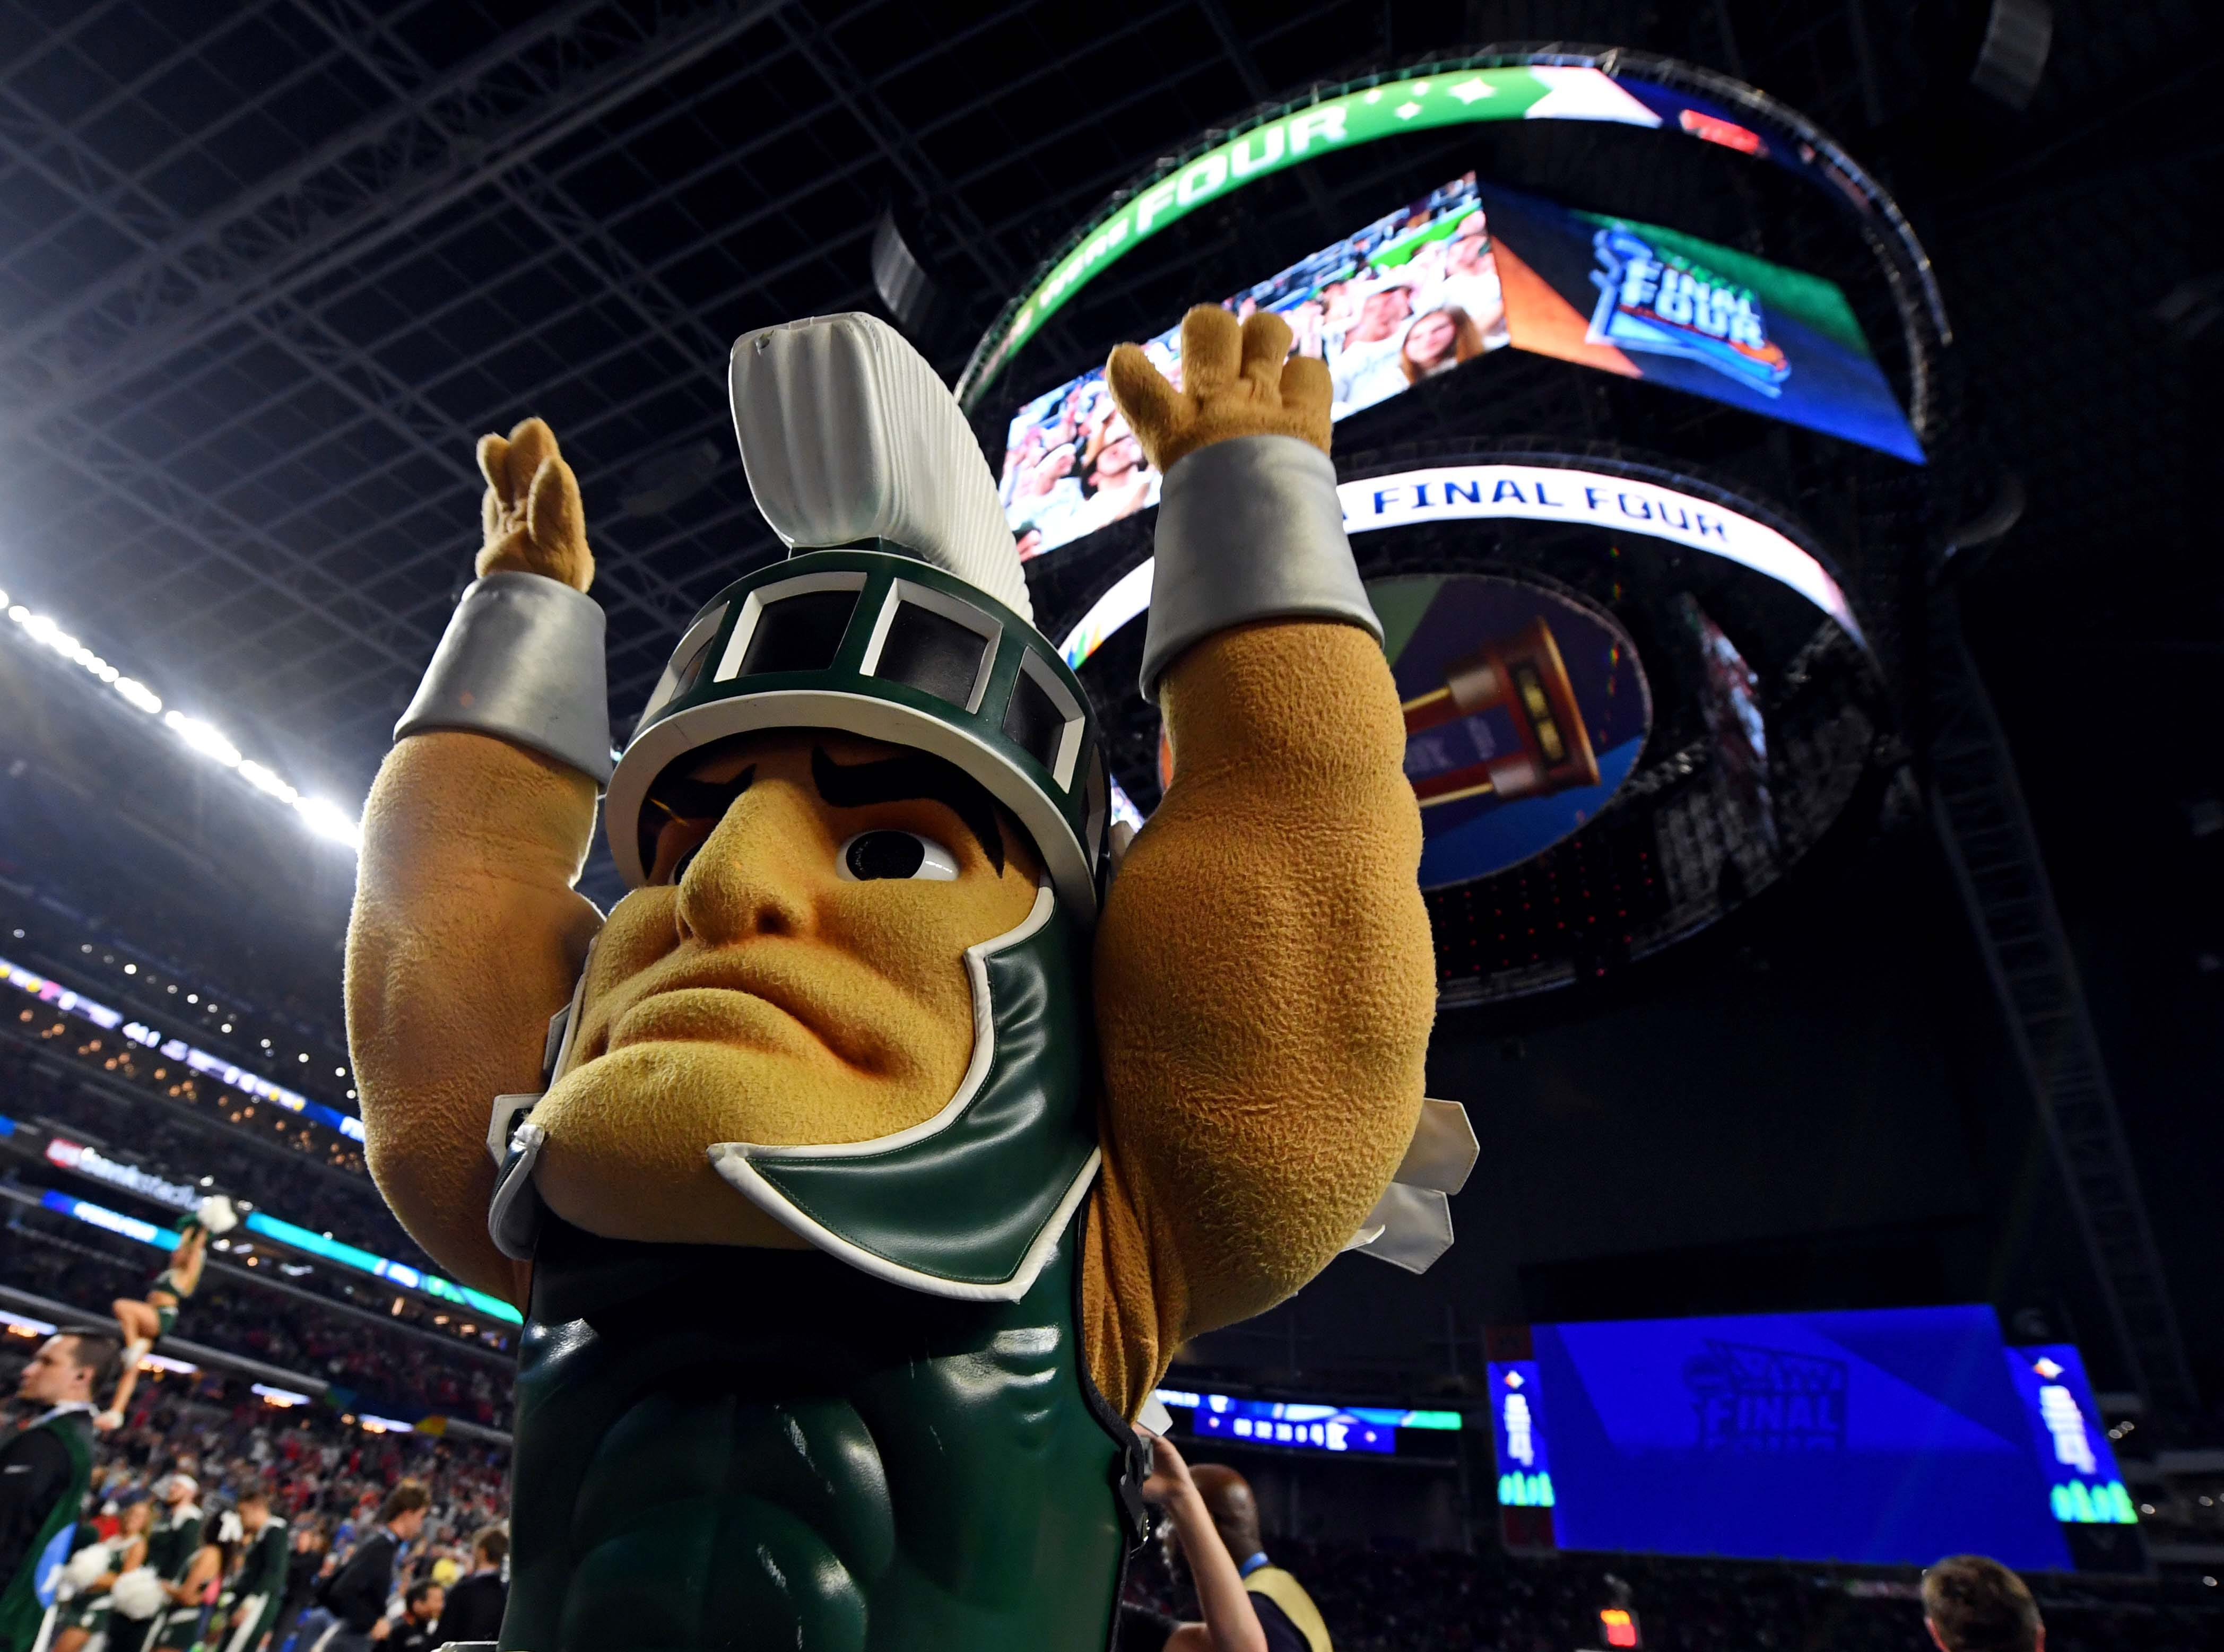 Final Four: The Michigan State Spartans mascot performs before the game against the Texas Tech Red Raiders.